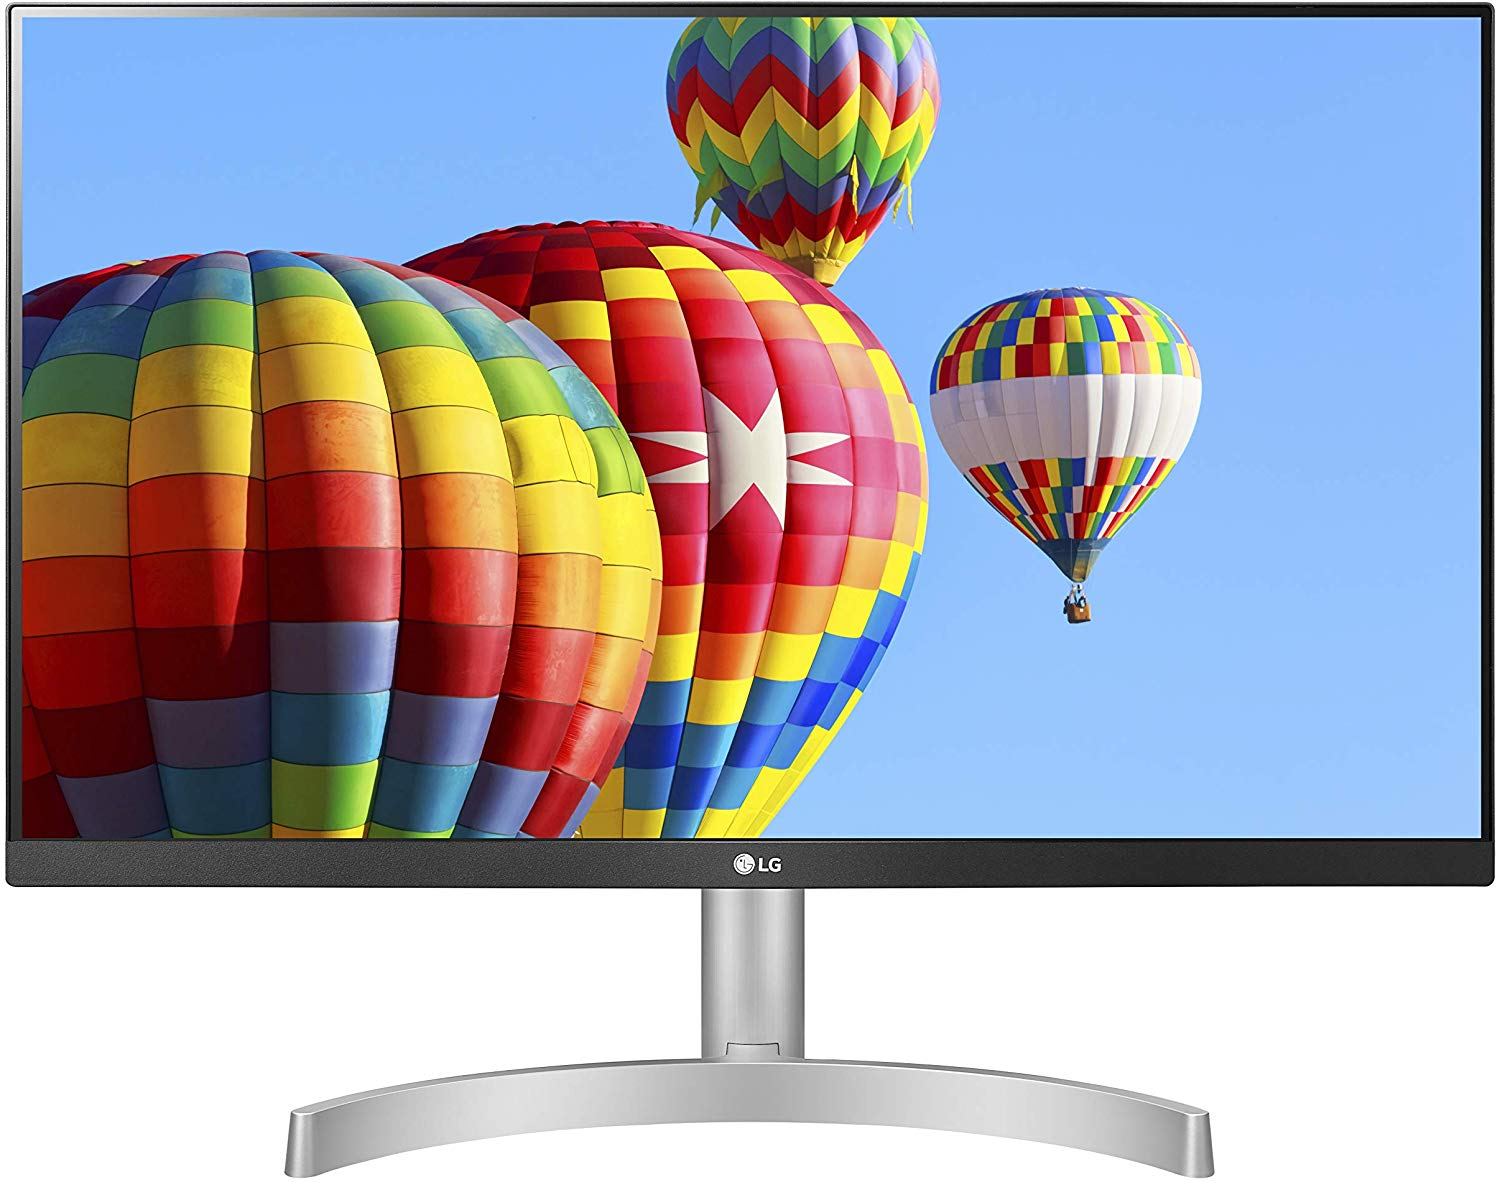 LG 24ML600S Monitor 24 amazon